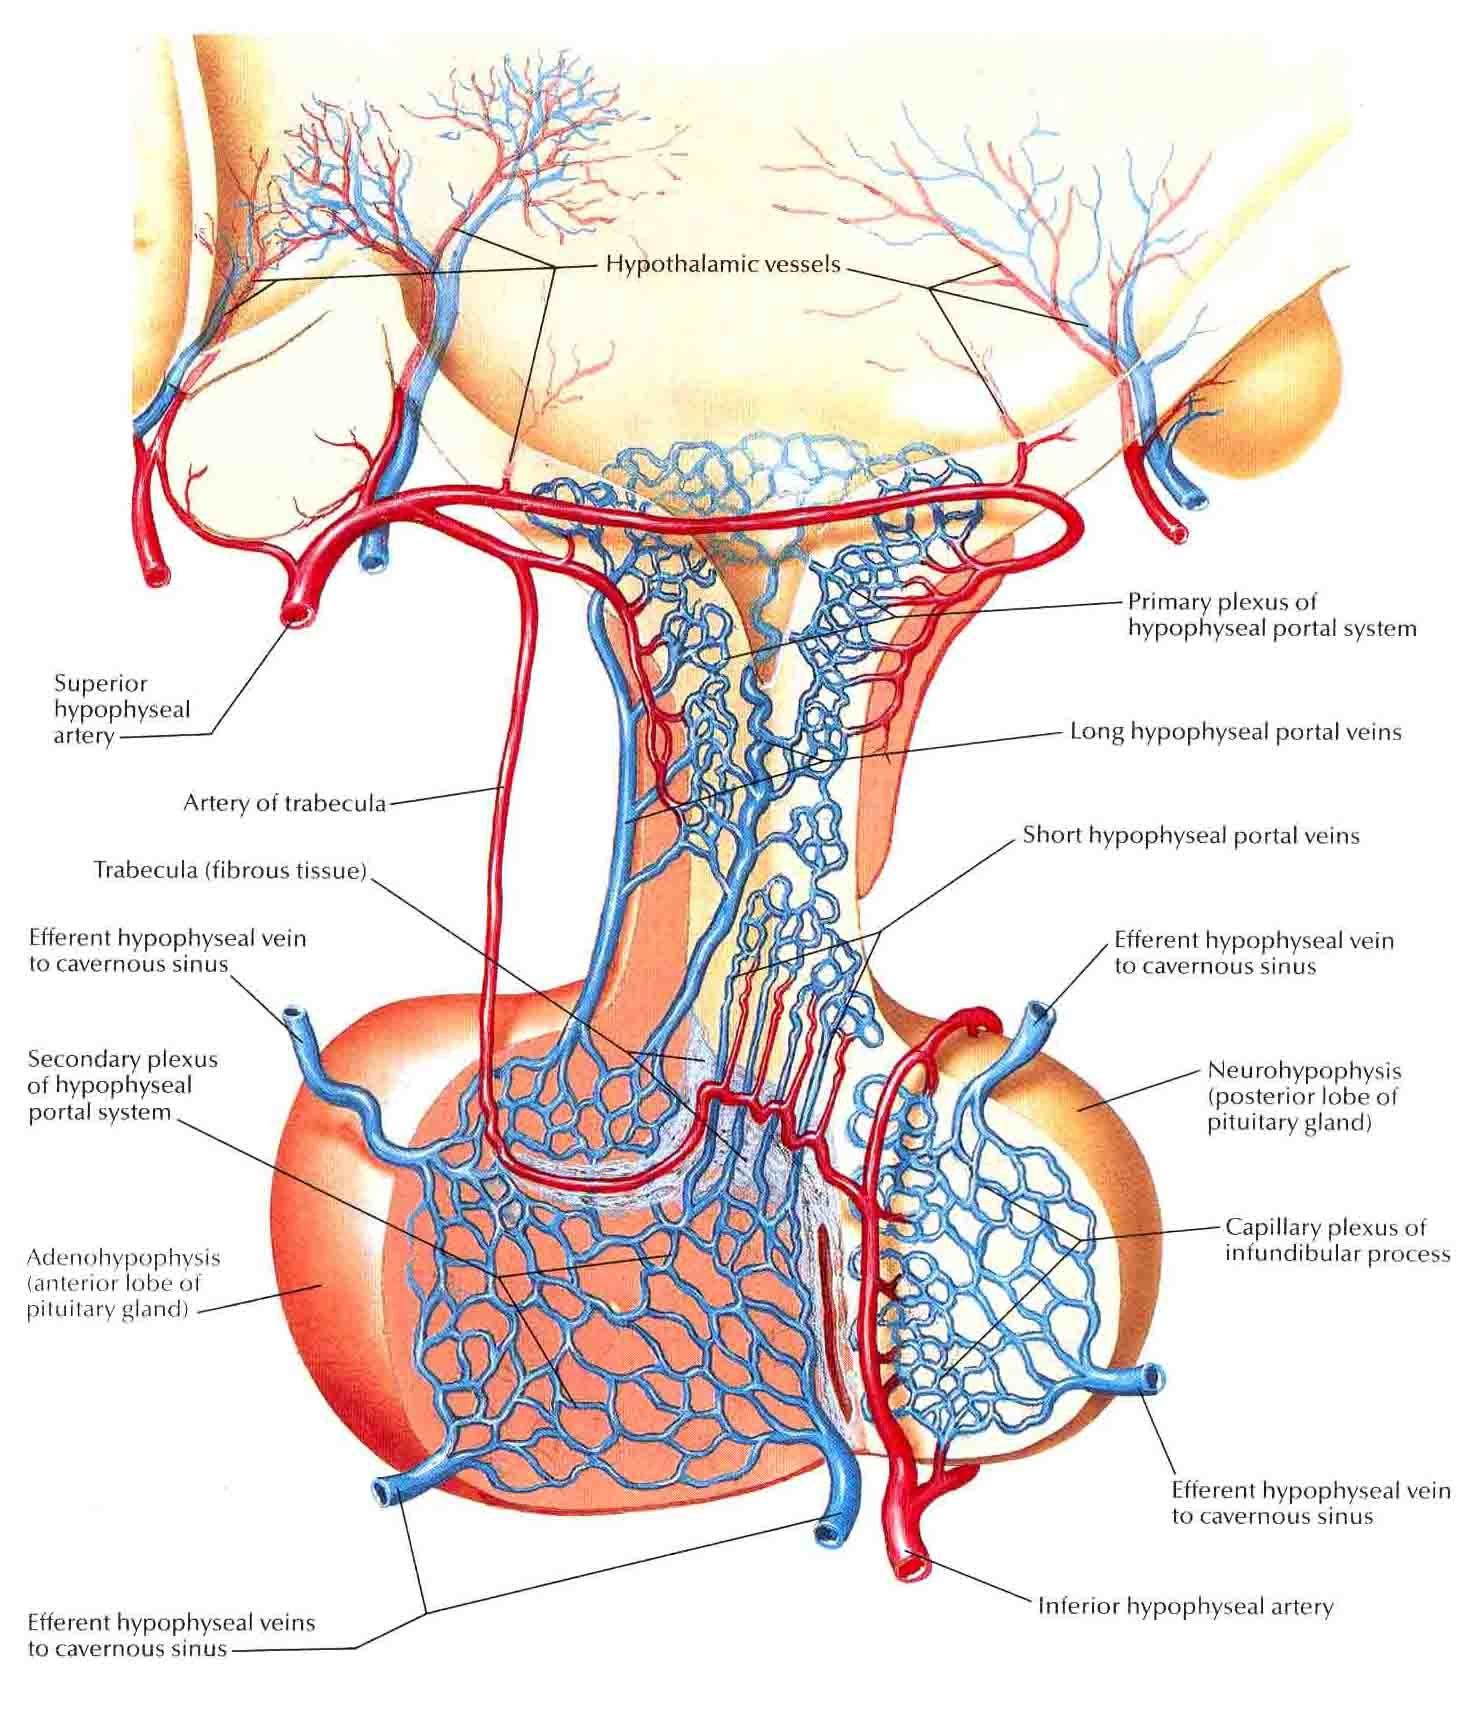 arteries-and-veinds-of-hypothalamus-and-hypophysis.jpg (1484×1728 ...